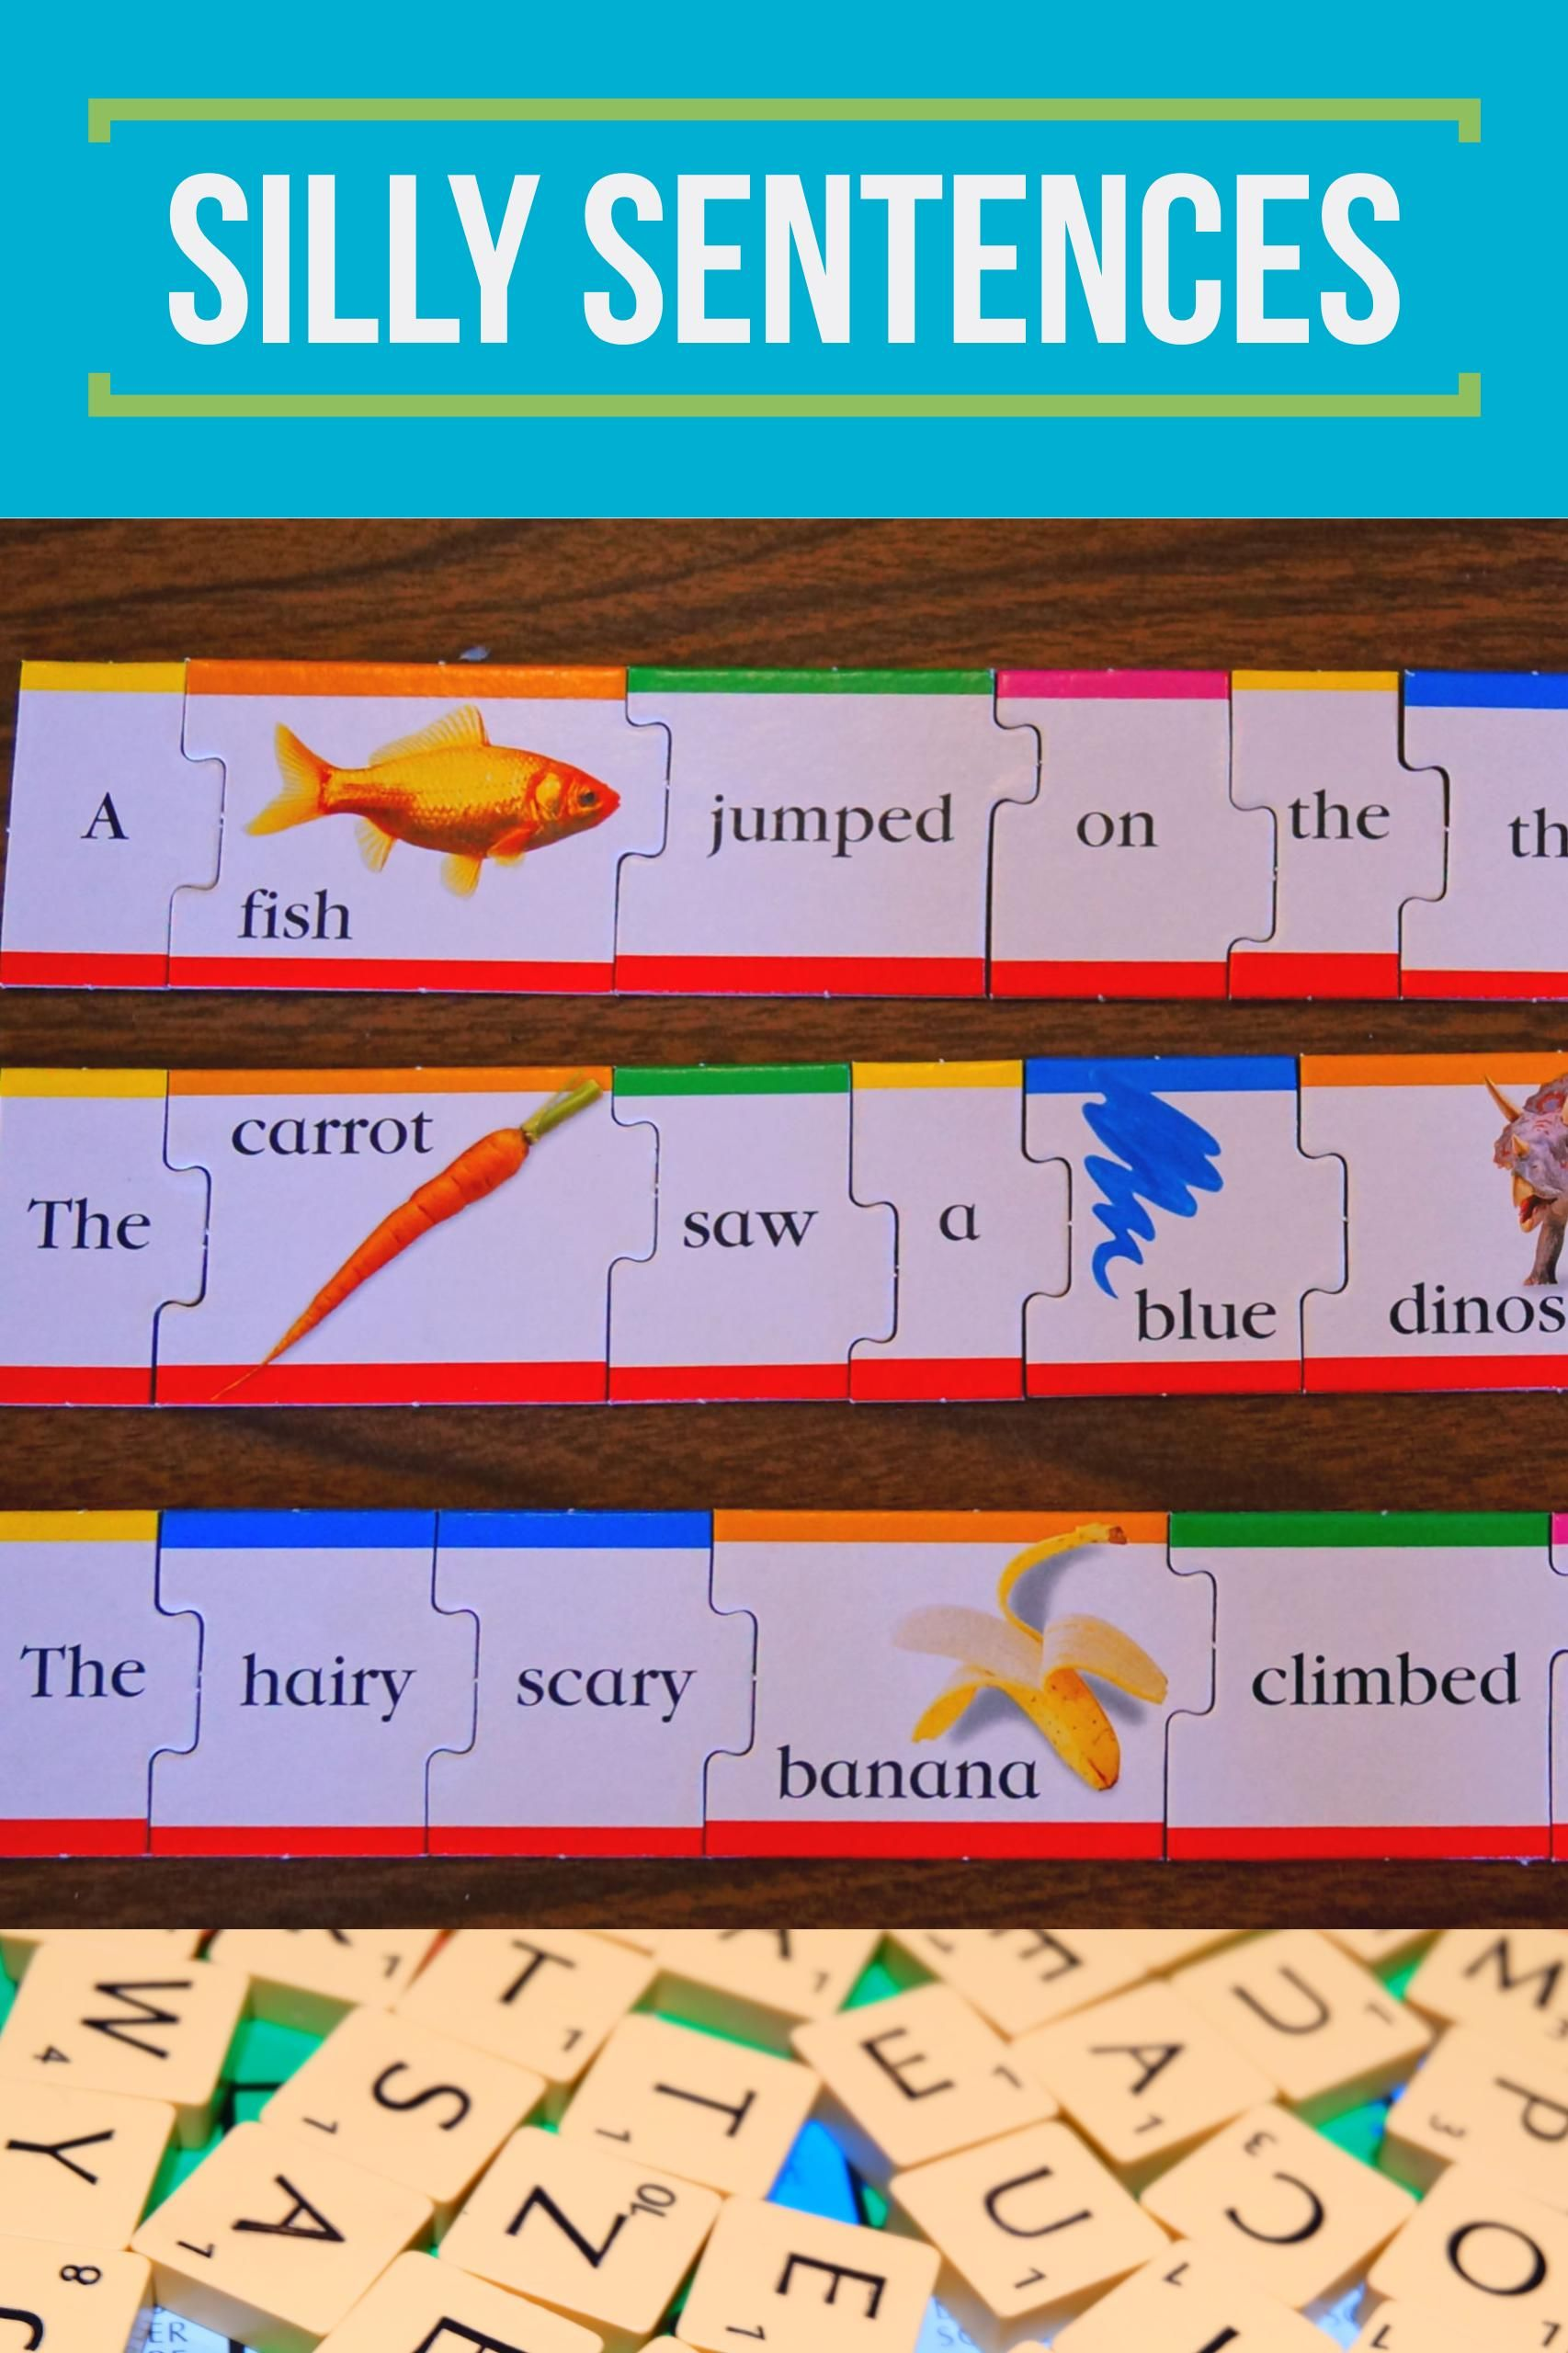 Silly Sentences With Images